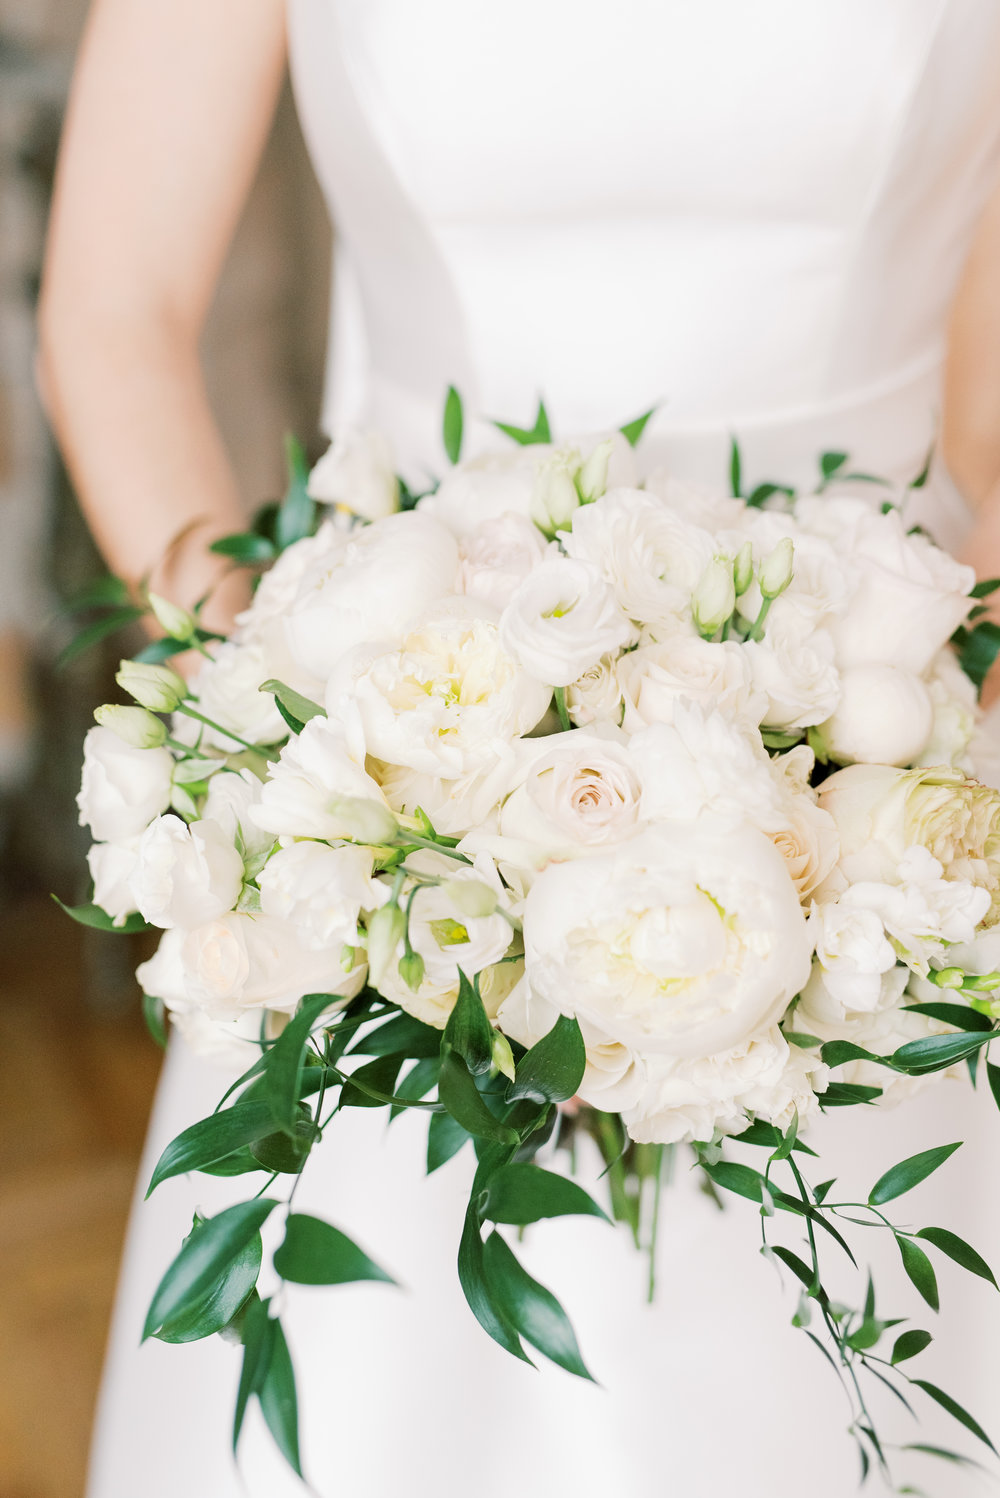 We loved this classic white bouquet with trailing greens from this romantic and classic wedding day for their french inspired green and white Cairnwood Estate wedding